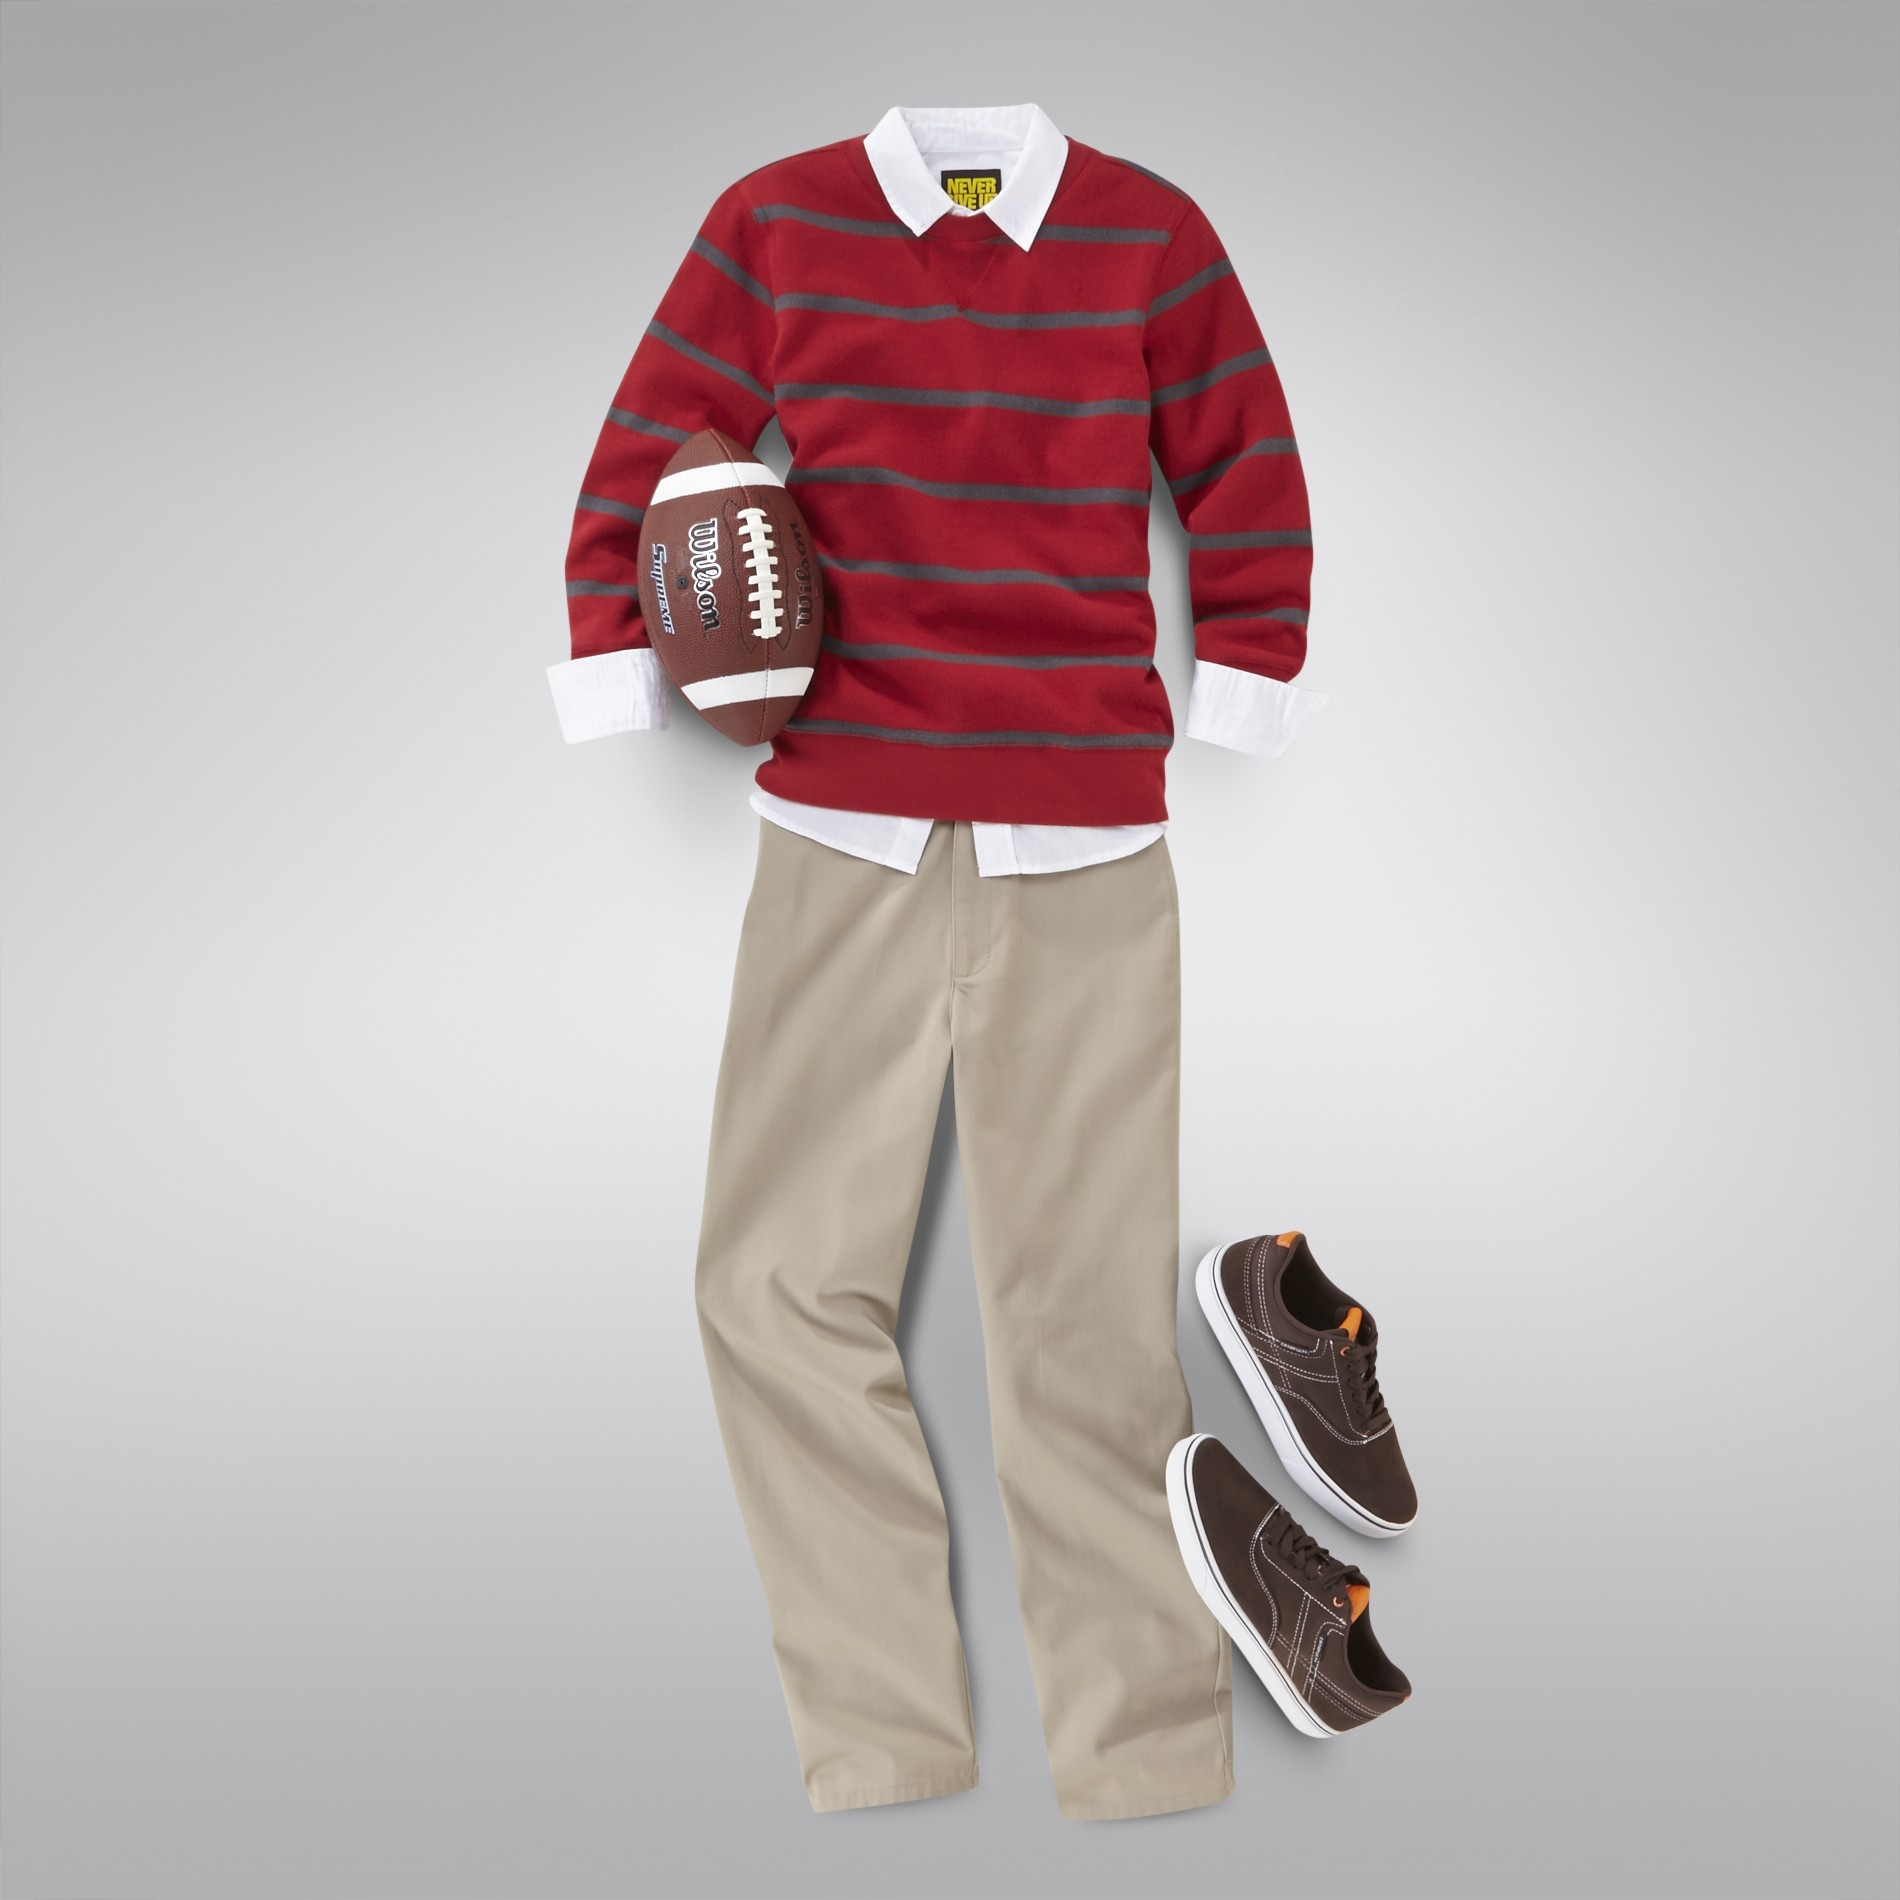 Boy's Prep Outfit at Kmart.com